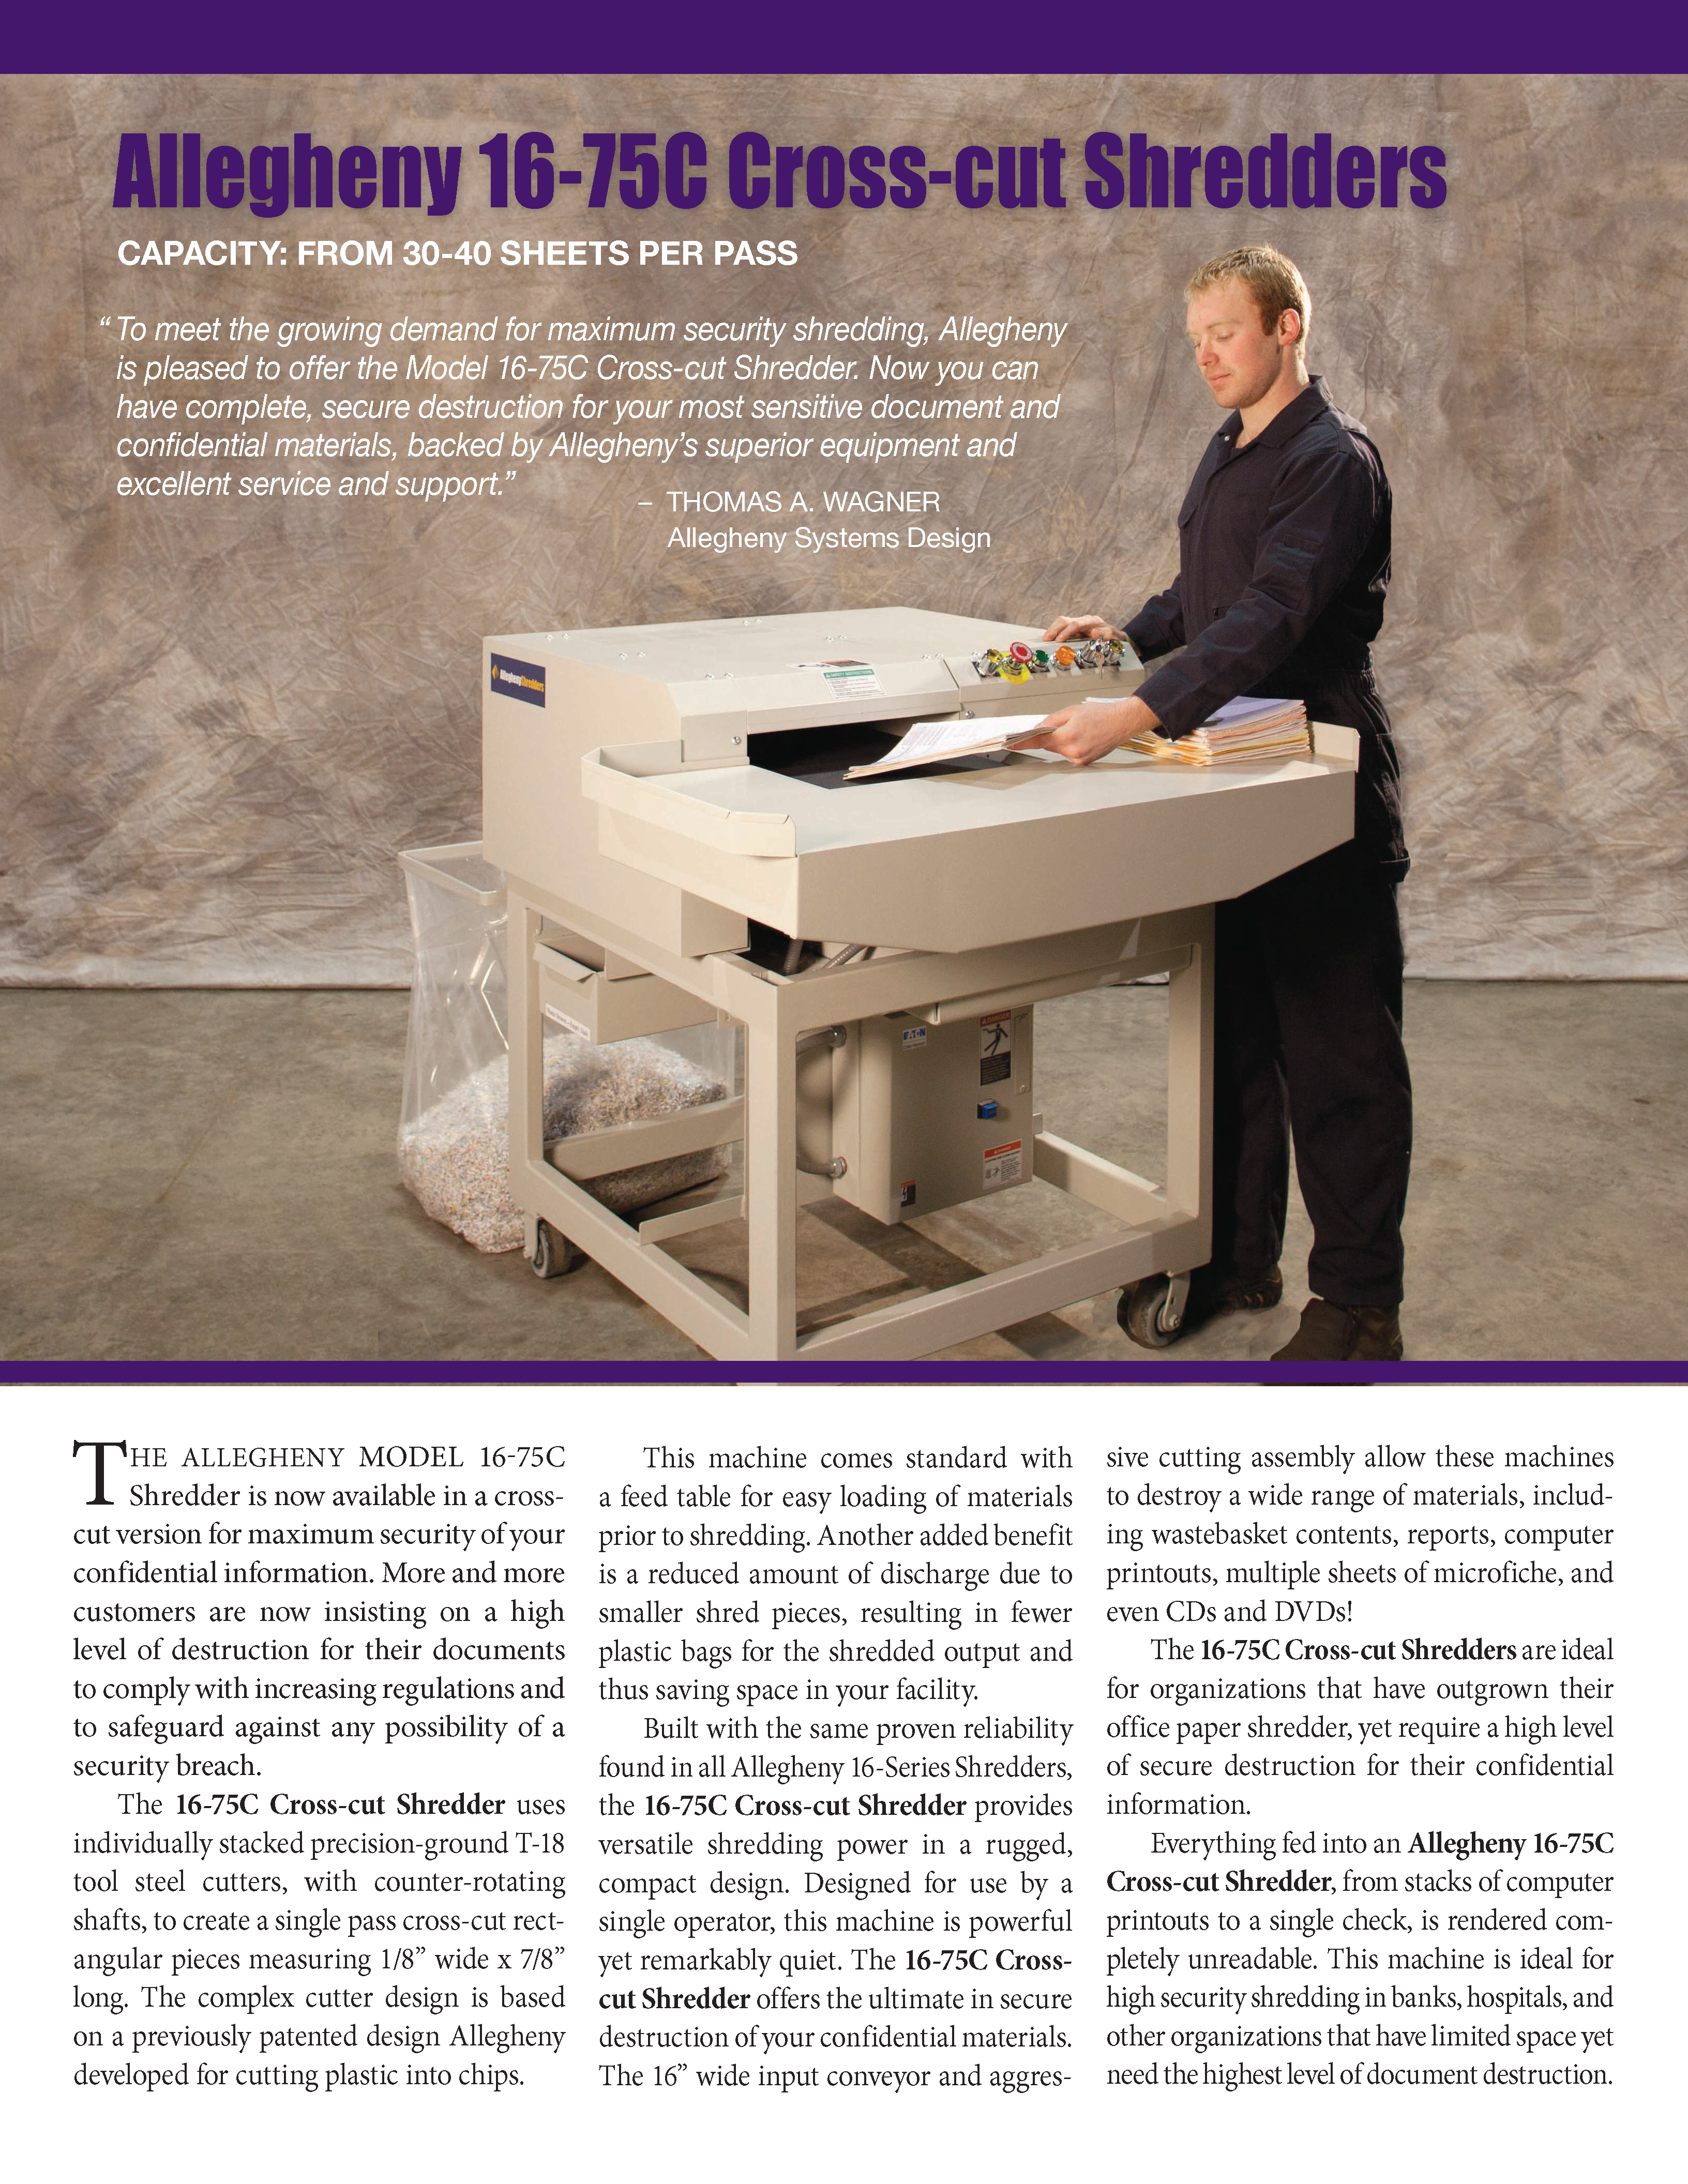 Learn more about the 16-75C Cross-cut Shredders in the Allegheny Brochure.